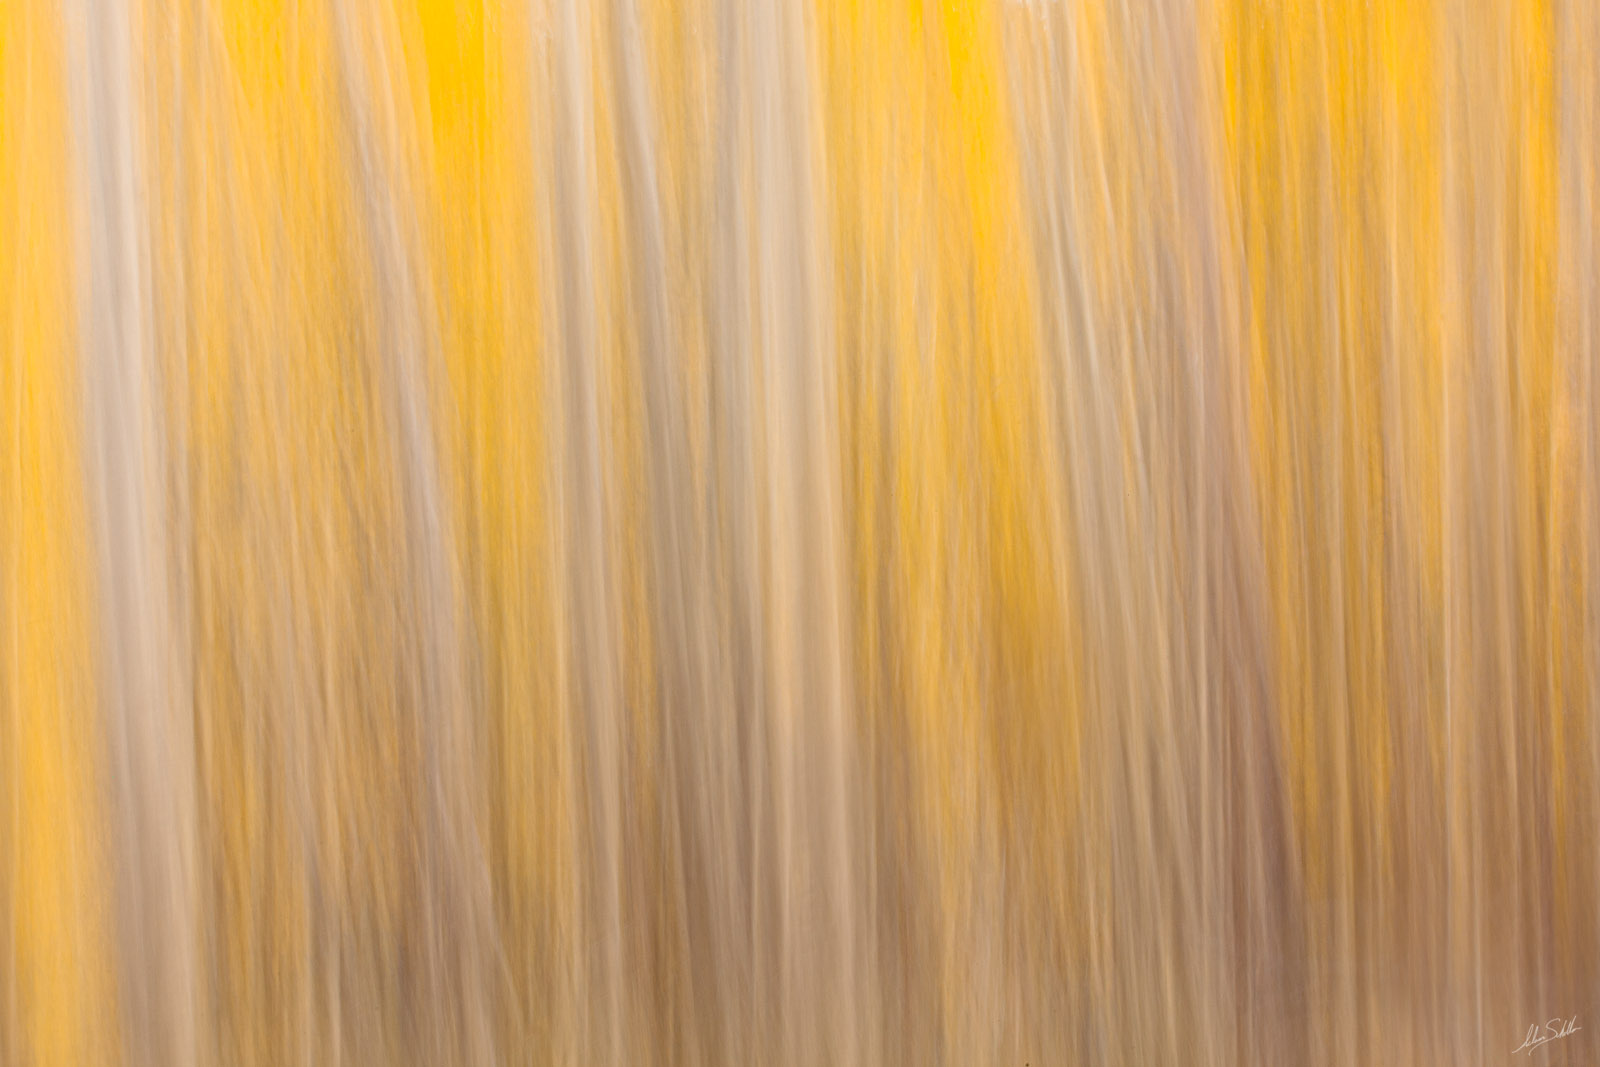 Abstract, Art, Aspen Trees, Autumn, Blur, Carson National Forest, Fall, Fall Color, ICM, Impressionistic, In Camera Motion, NM, New Mexico, Red River, Valle Vidal, photo